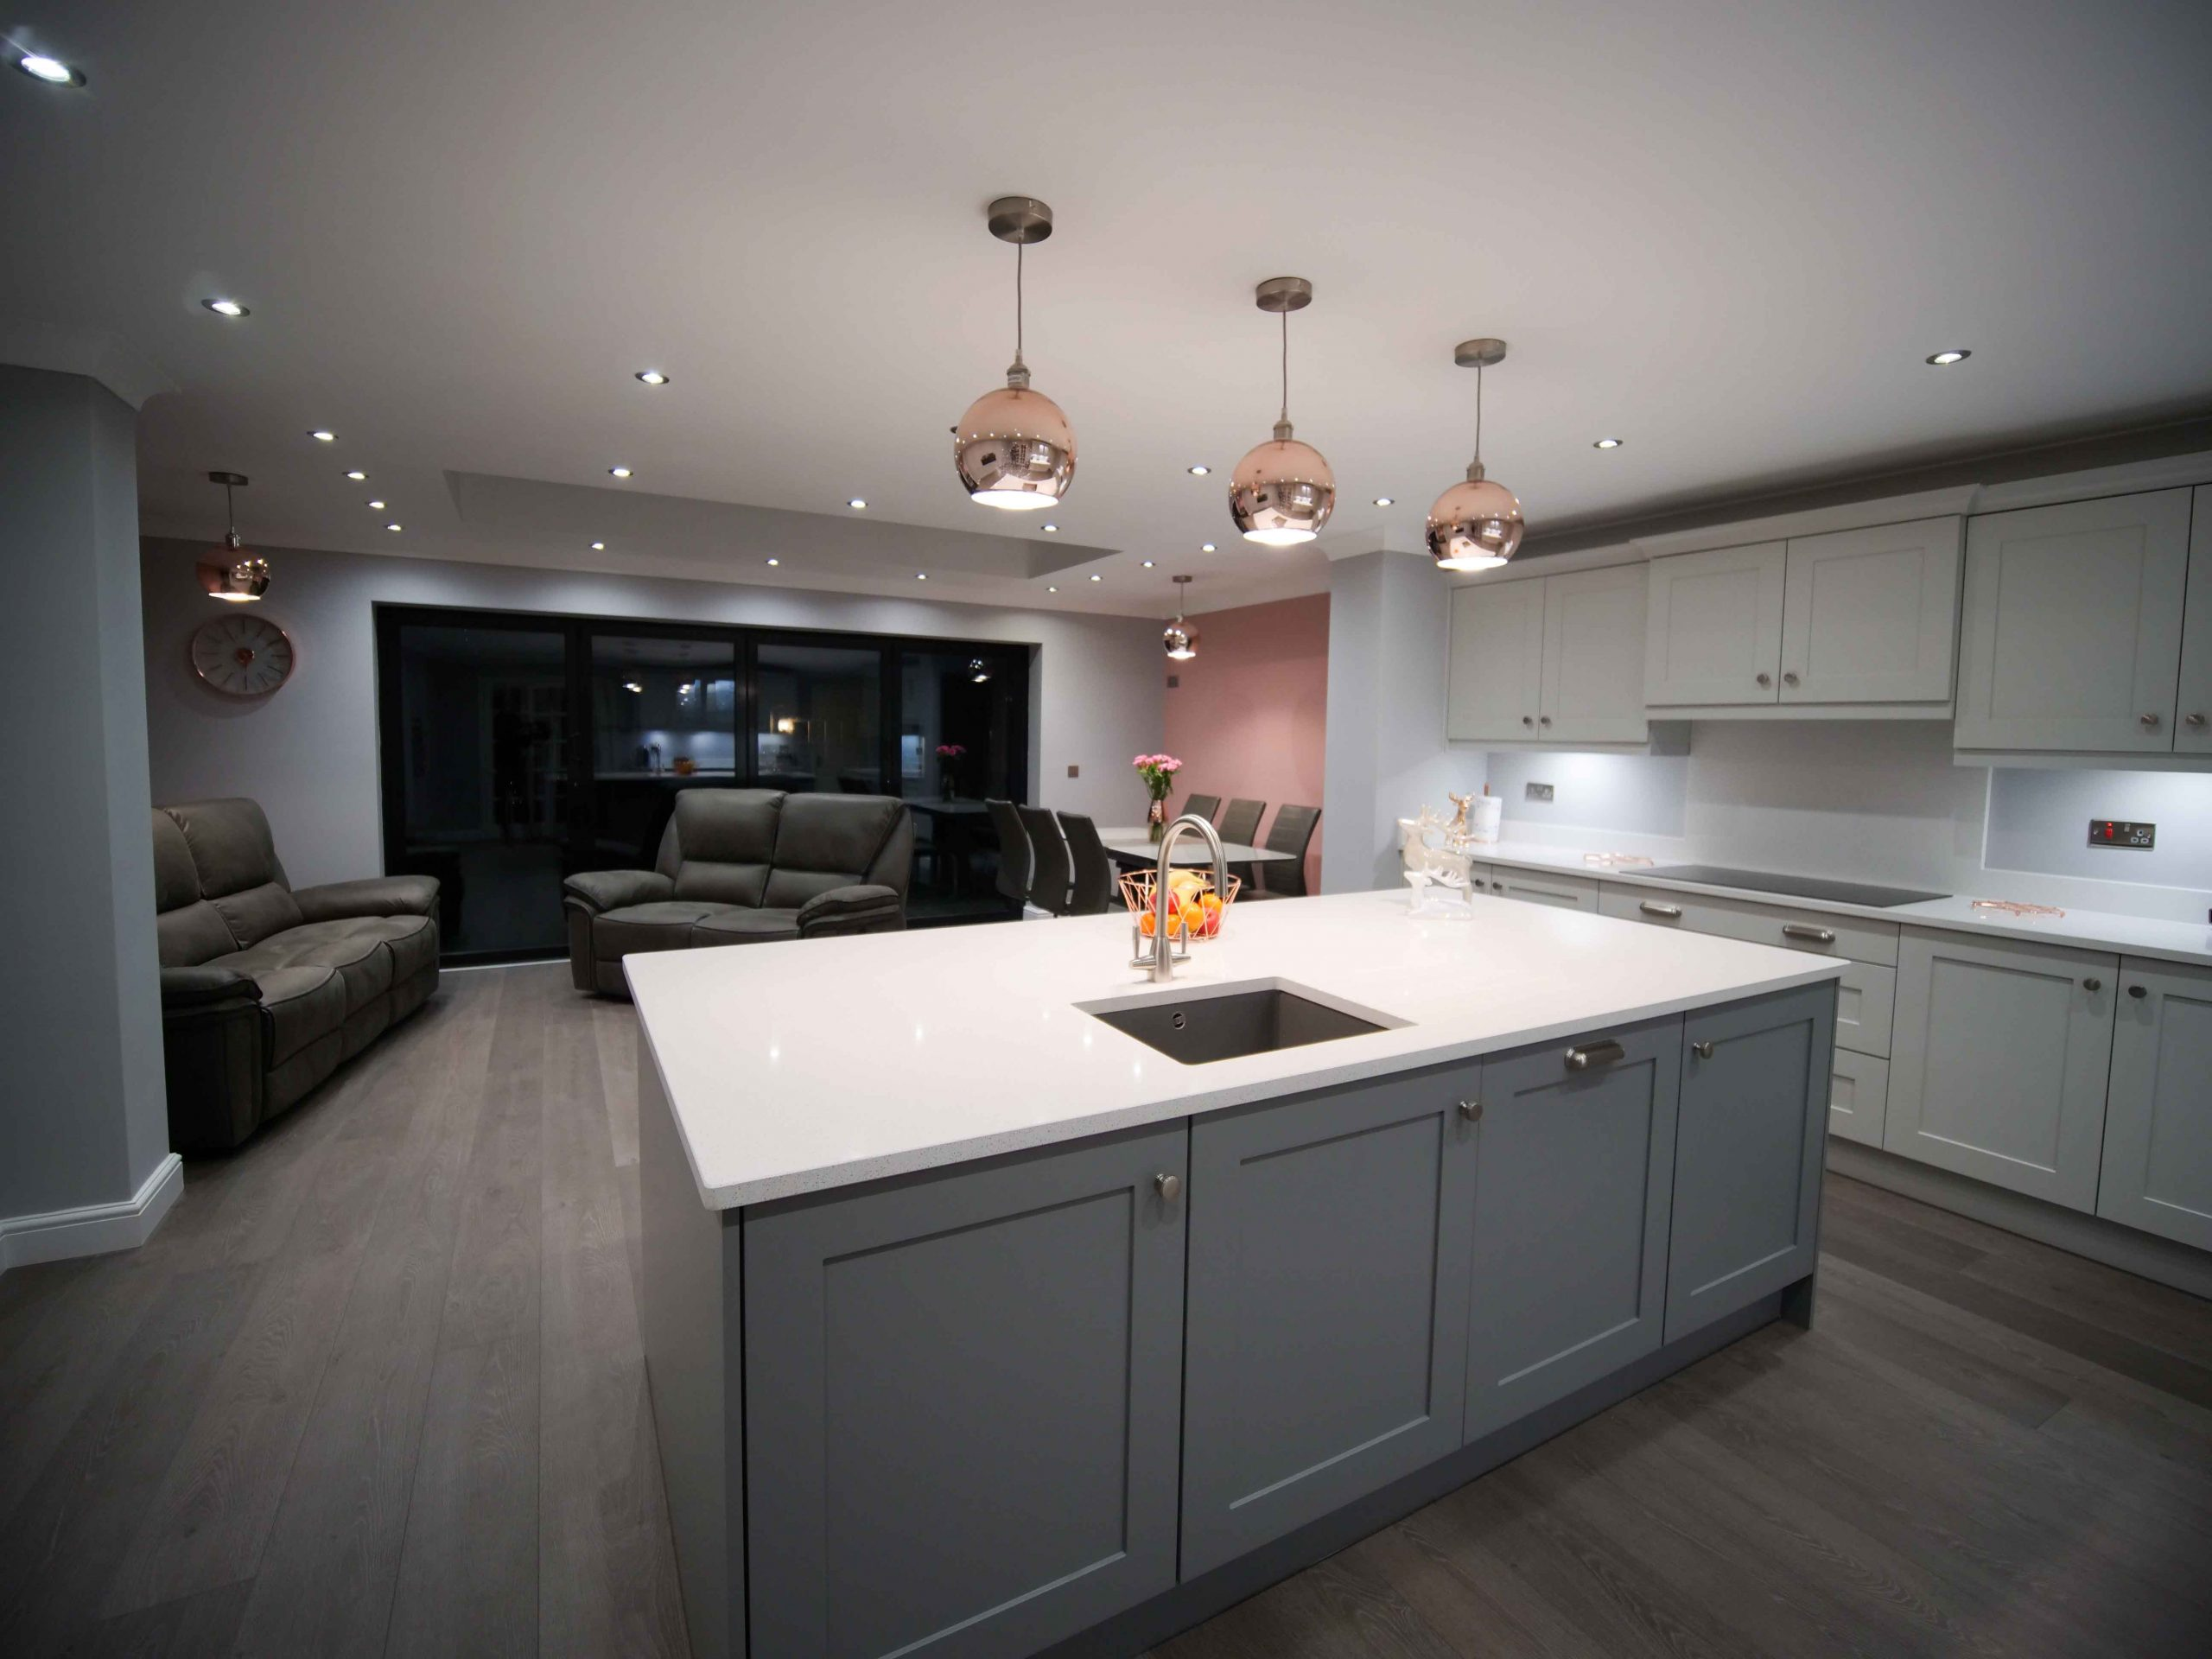 Kitchen Diner In An Open Plan Living Space The Gallery Fitted Kitchens